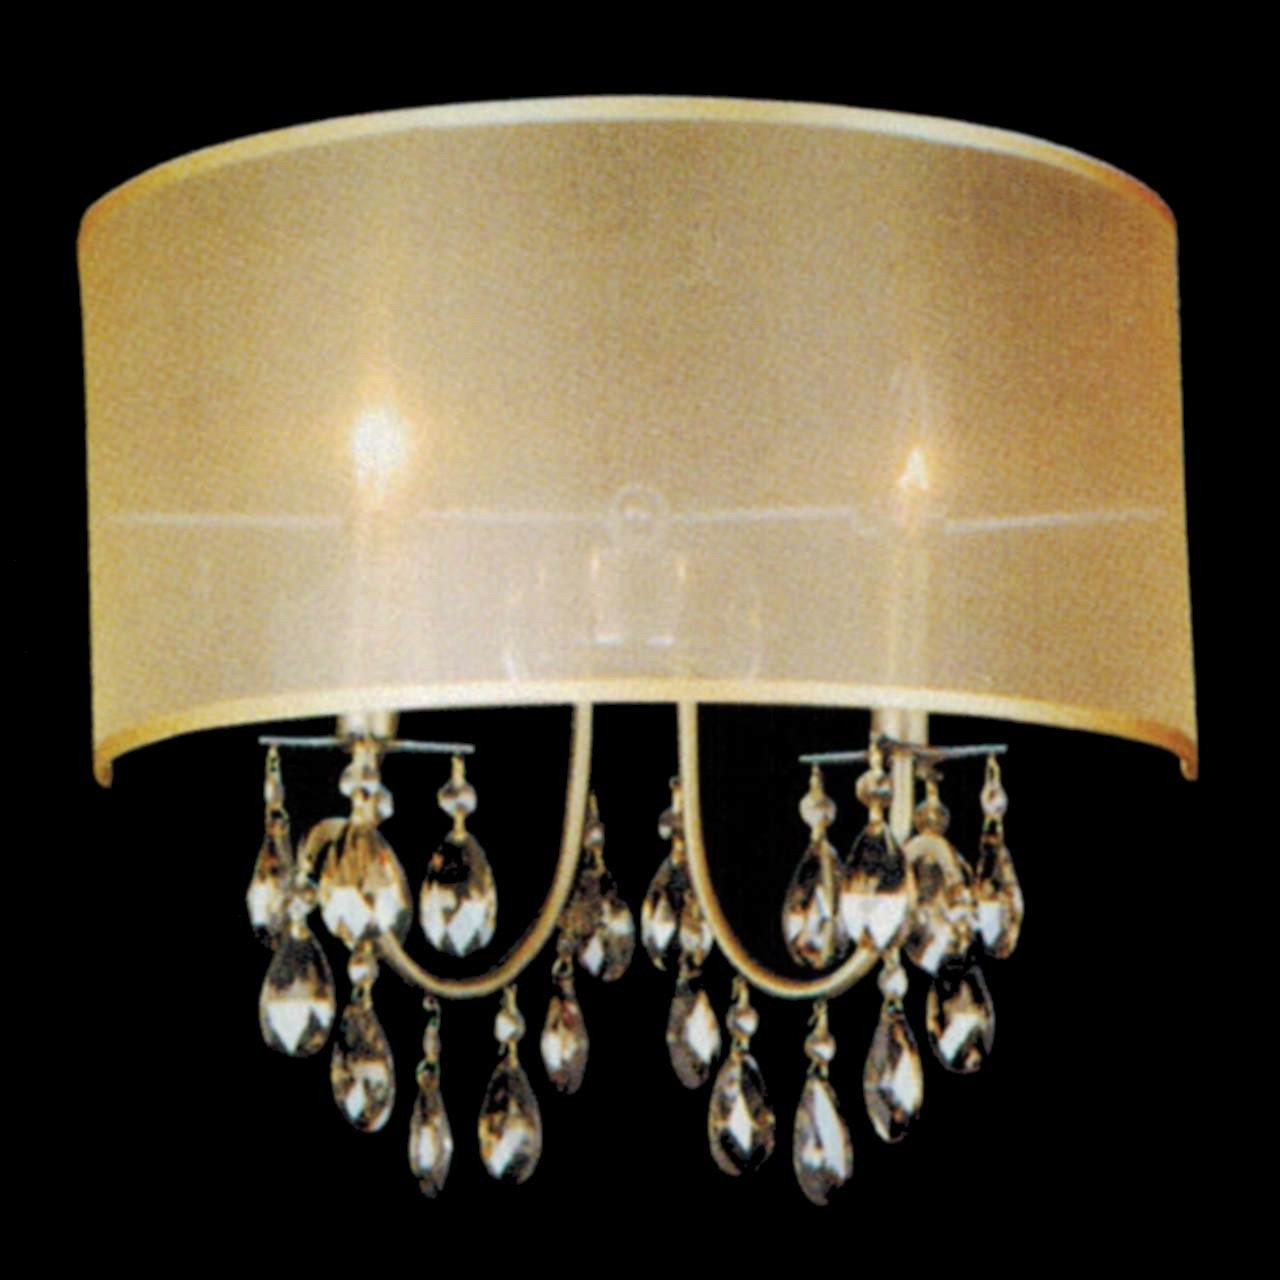 Lighting Bronze Chandelier With Crystals Modern Lighting Crystal Regarding Chandelier Wall Lights (Image 6 of 15)